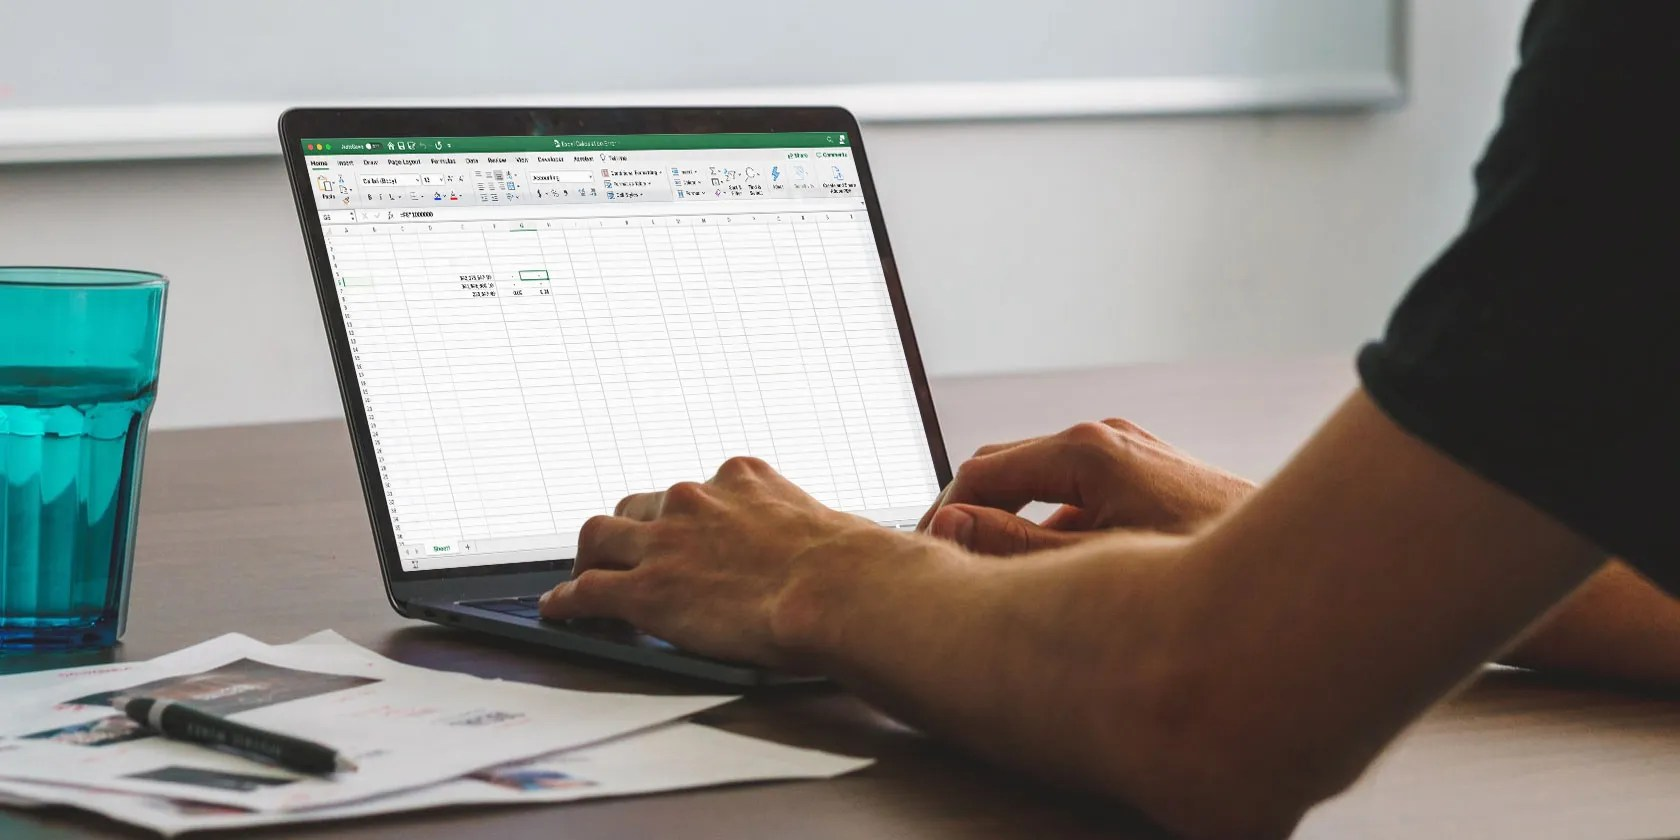 How To Combine Two Columns In Excel Easily And Quickly